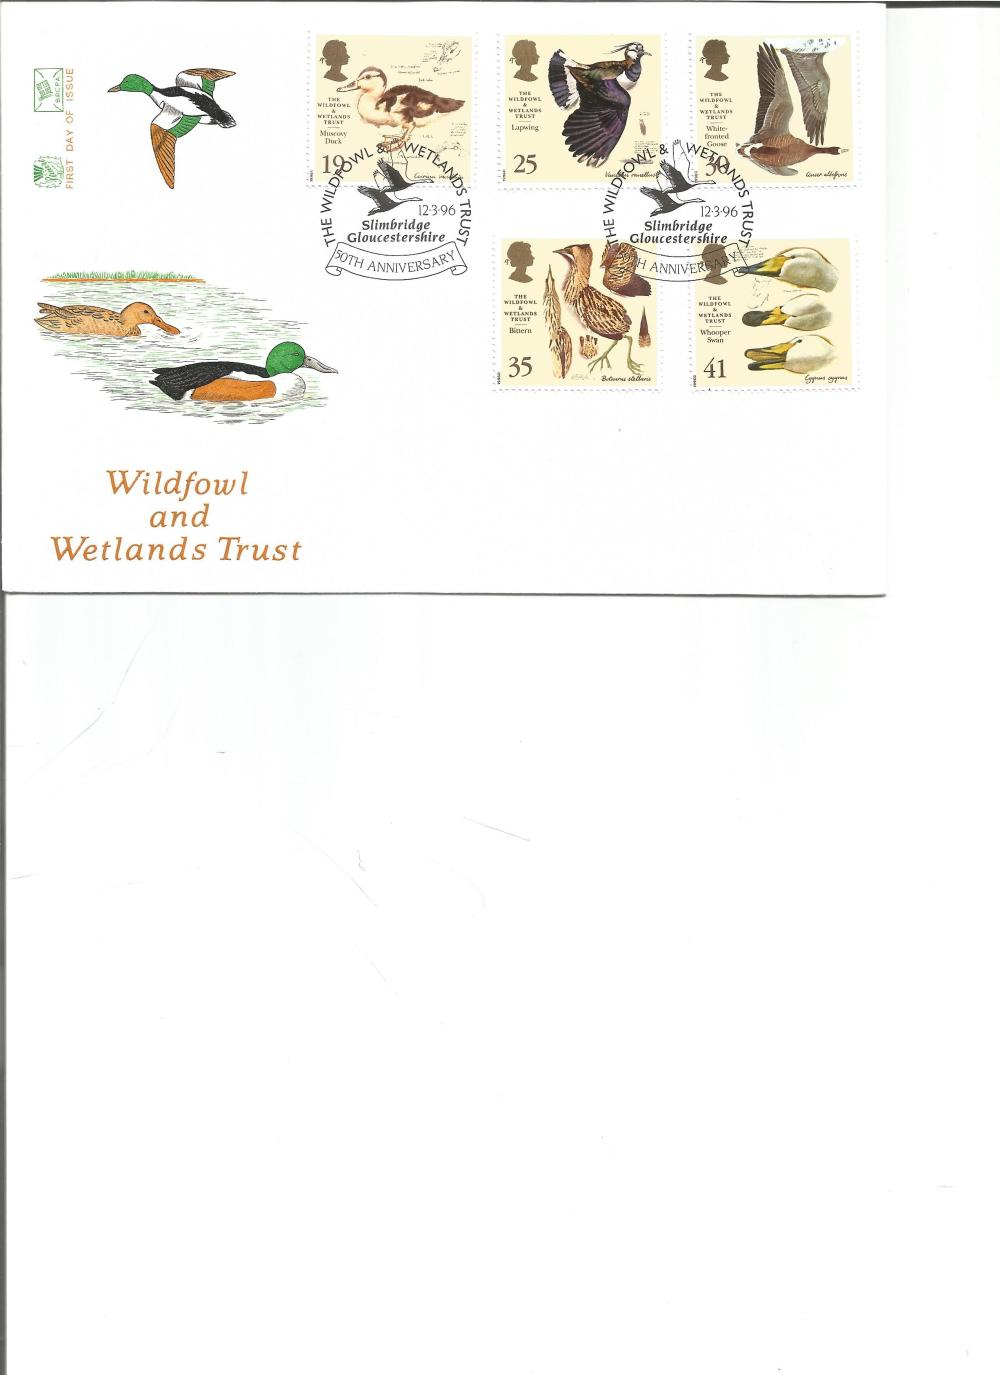 FDC Wildfowl and Wetlands Trust c/w set of five stamps double PM 50th Anniversary The Wildfowl &